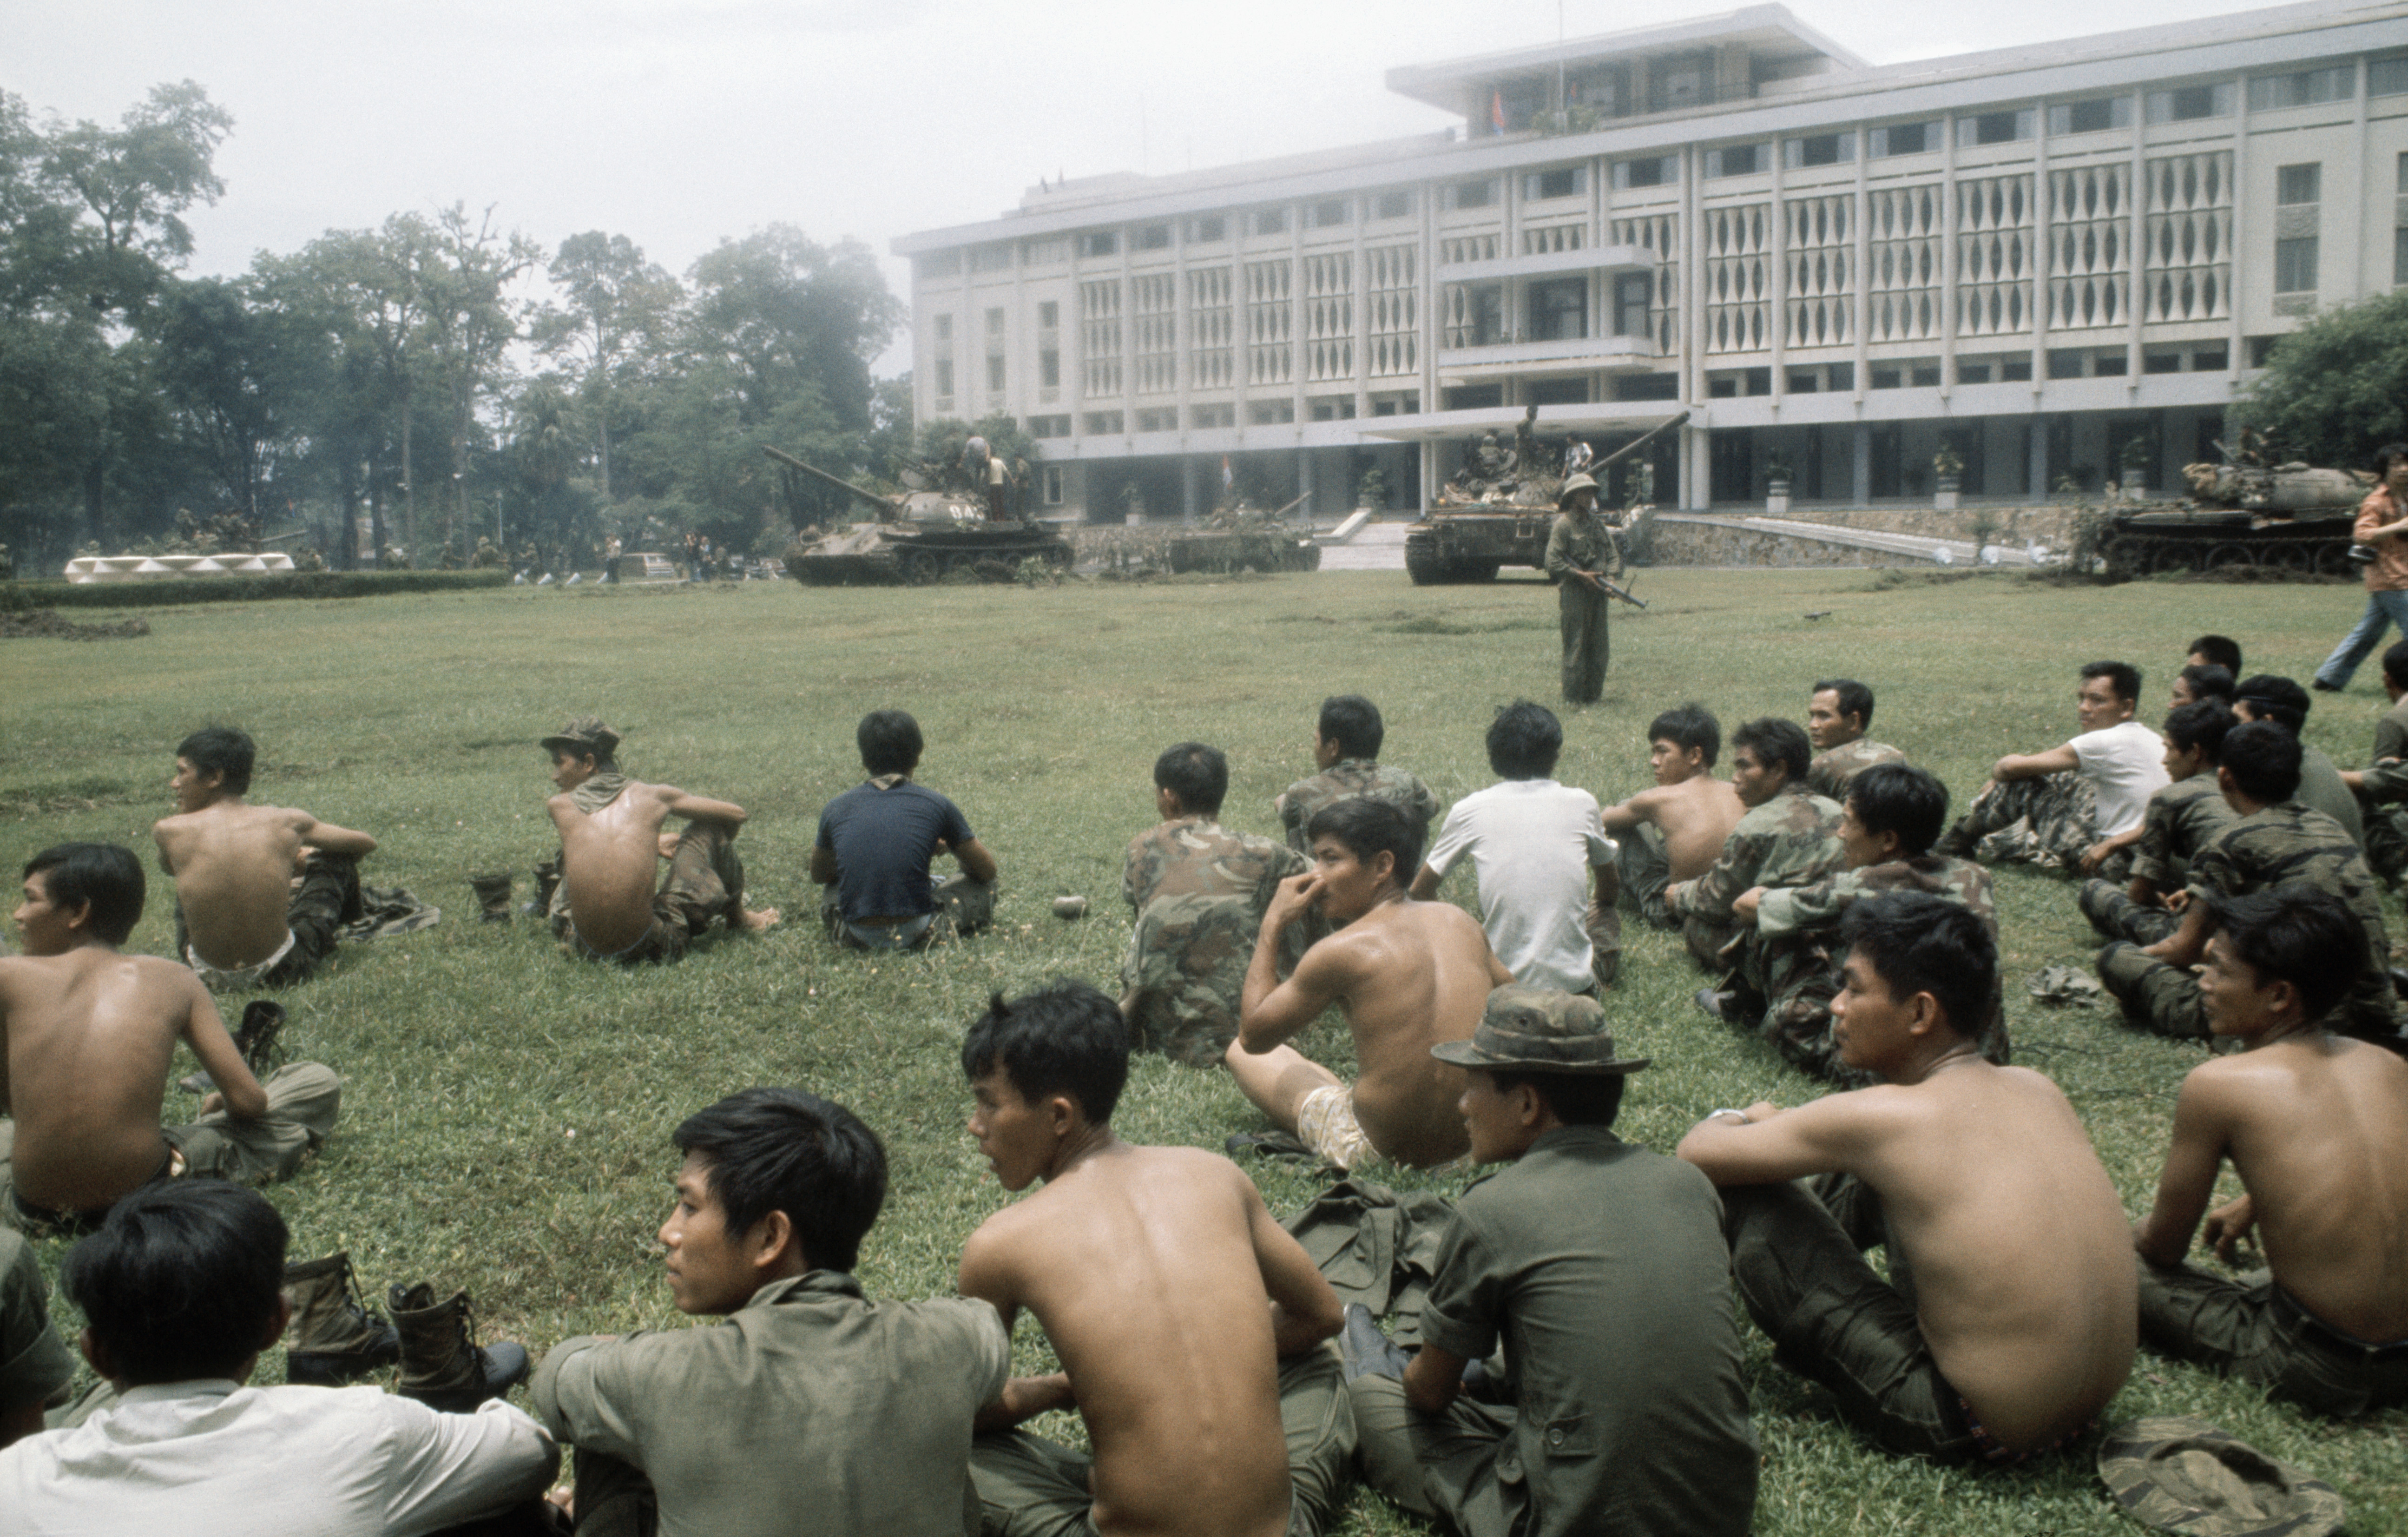 vietnam war april 30th 1975 most remembered day war The vietnam war [a 2] was a cold war military conflict that occurred in vietnam, laos, and cambodia from november 1, 1955[a 1], to april 30, 1975 when saigon fell this war followed the first indochina war and was fought between north vietnam, supported by its communist allies, and the government.